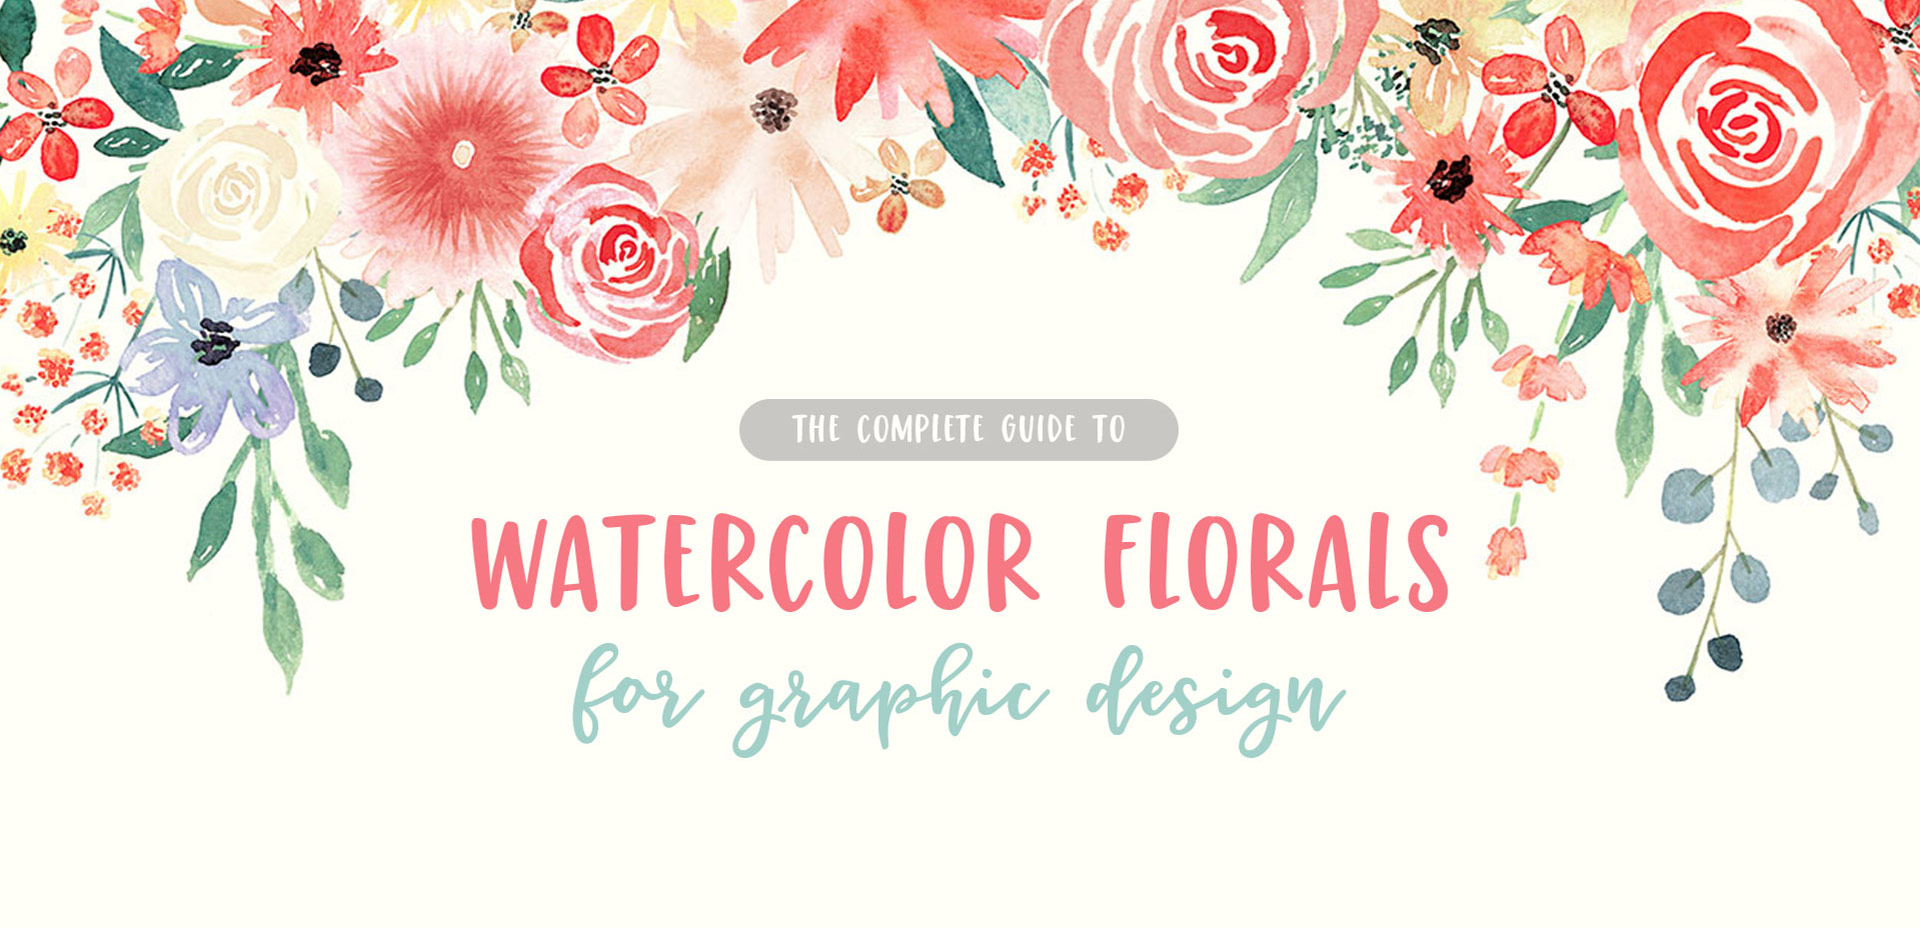 Cute Bordered Pastel Flower Wallpaper New Course Watercolor Florals For Graphic Design Every